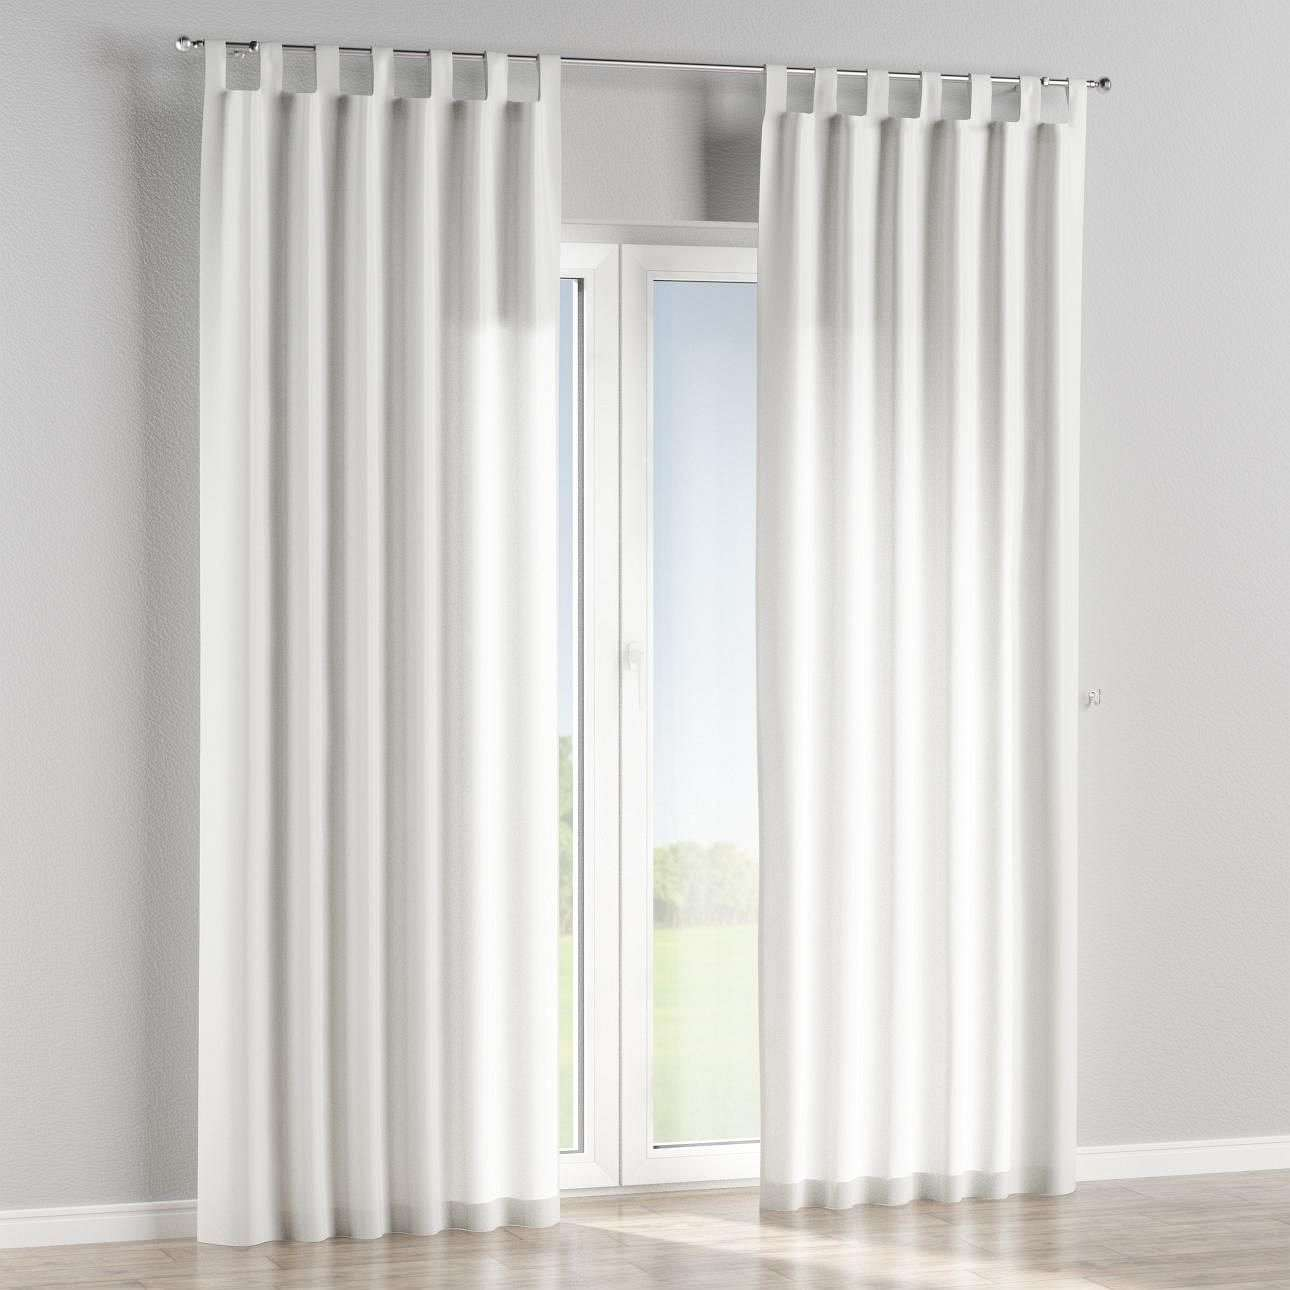 Tab top curtains in collection Bristol, fabric: 126-09